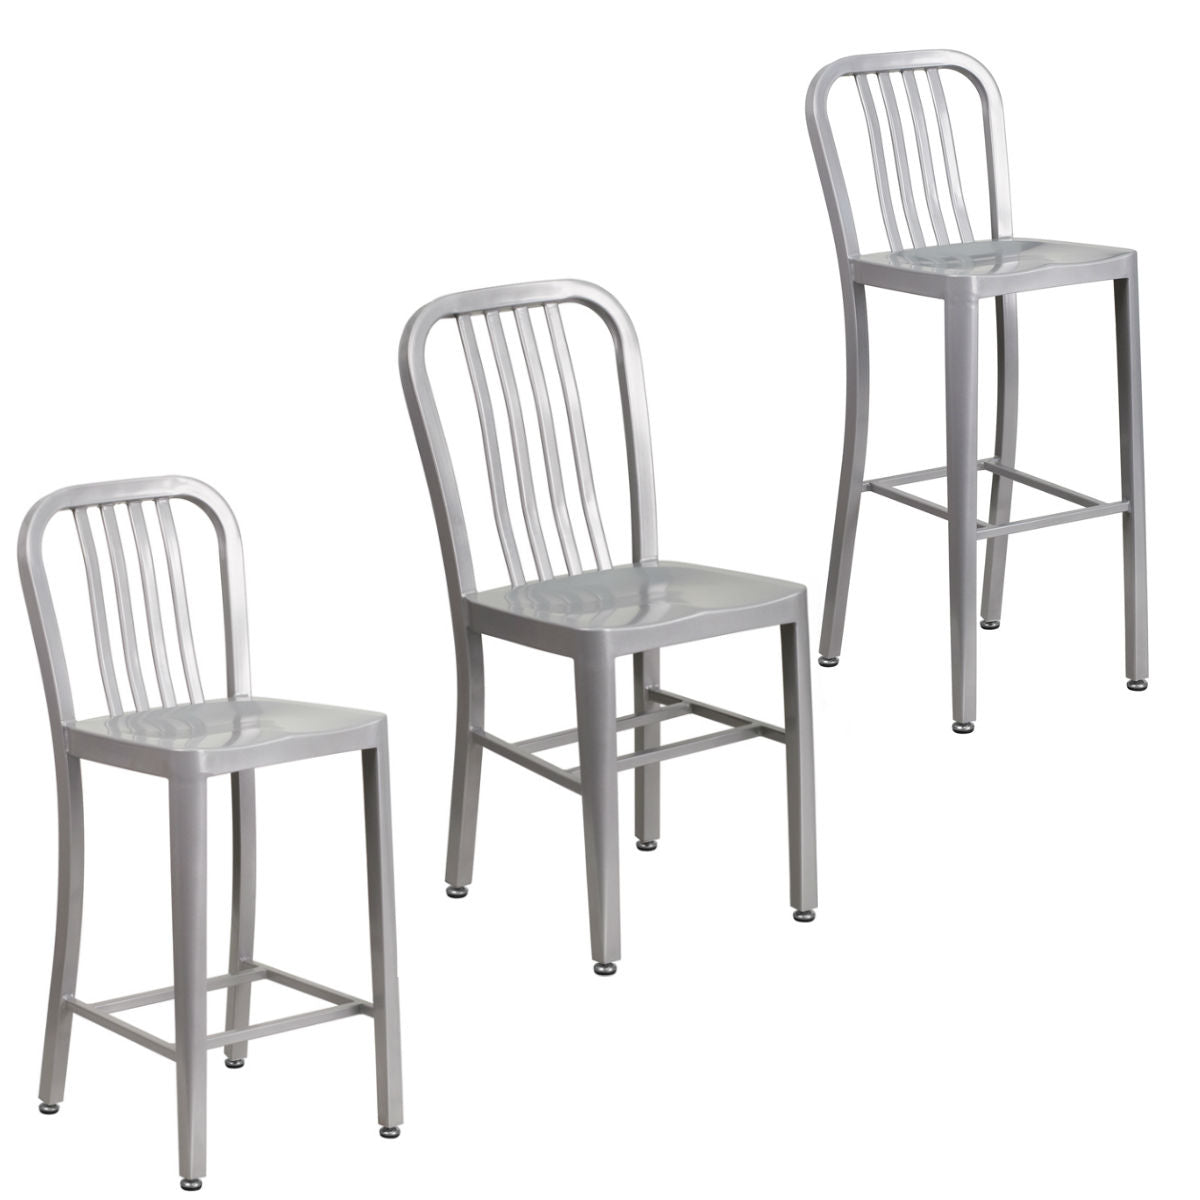 Flash Furniture Silver Metal Indoor-Outdoor Chair with High Silver Metal Indoor-Outdoor Counter Height Stool and Barstool with Vertical Slat Back.